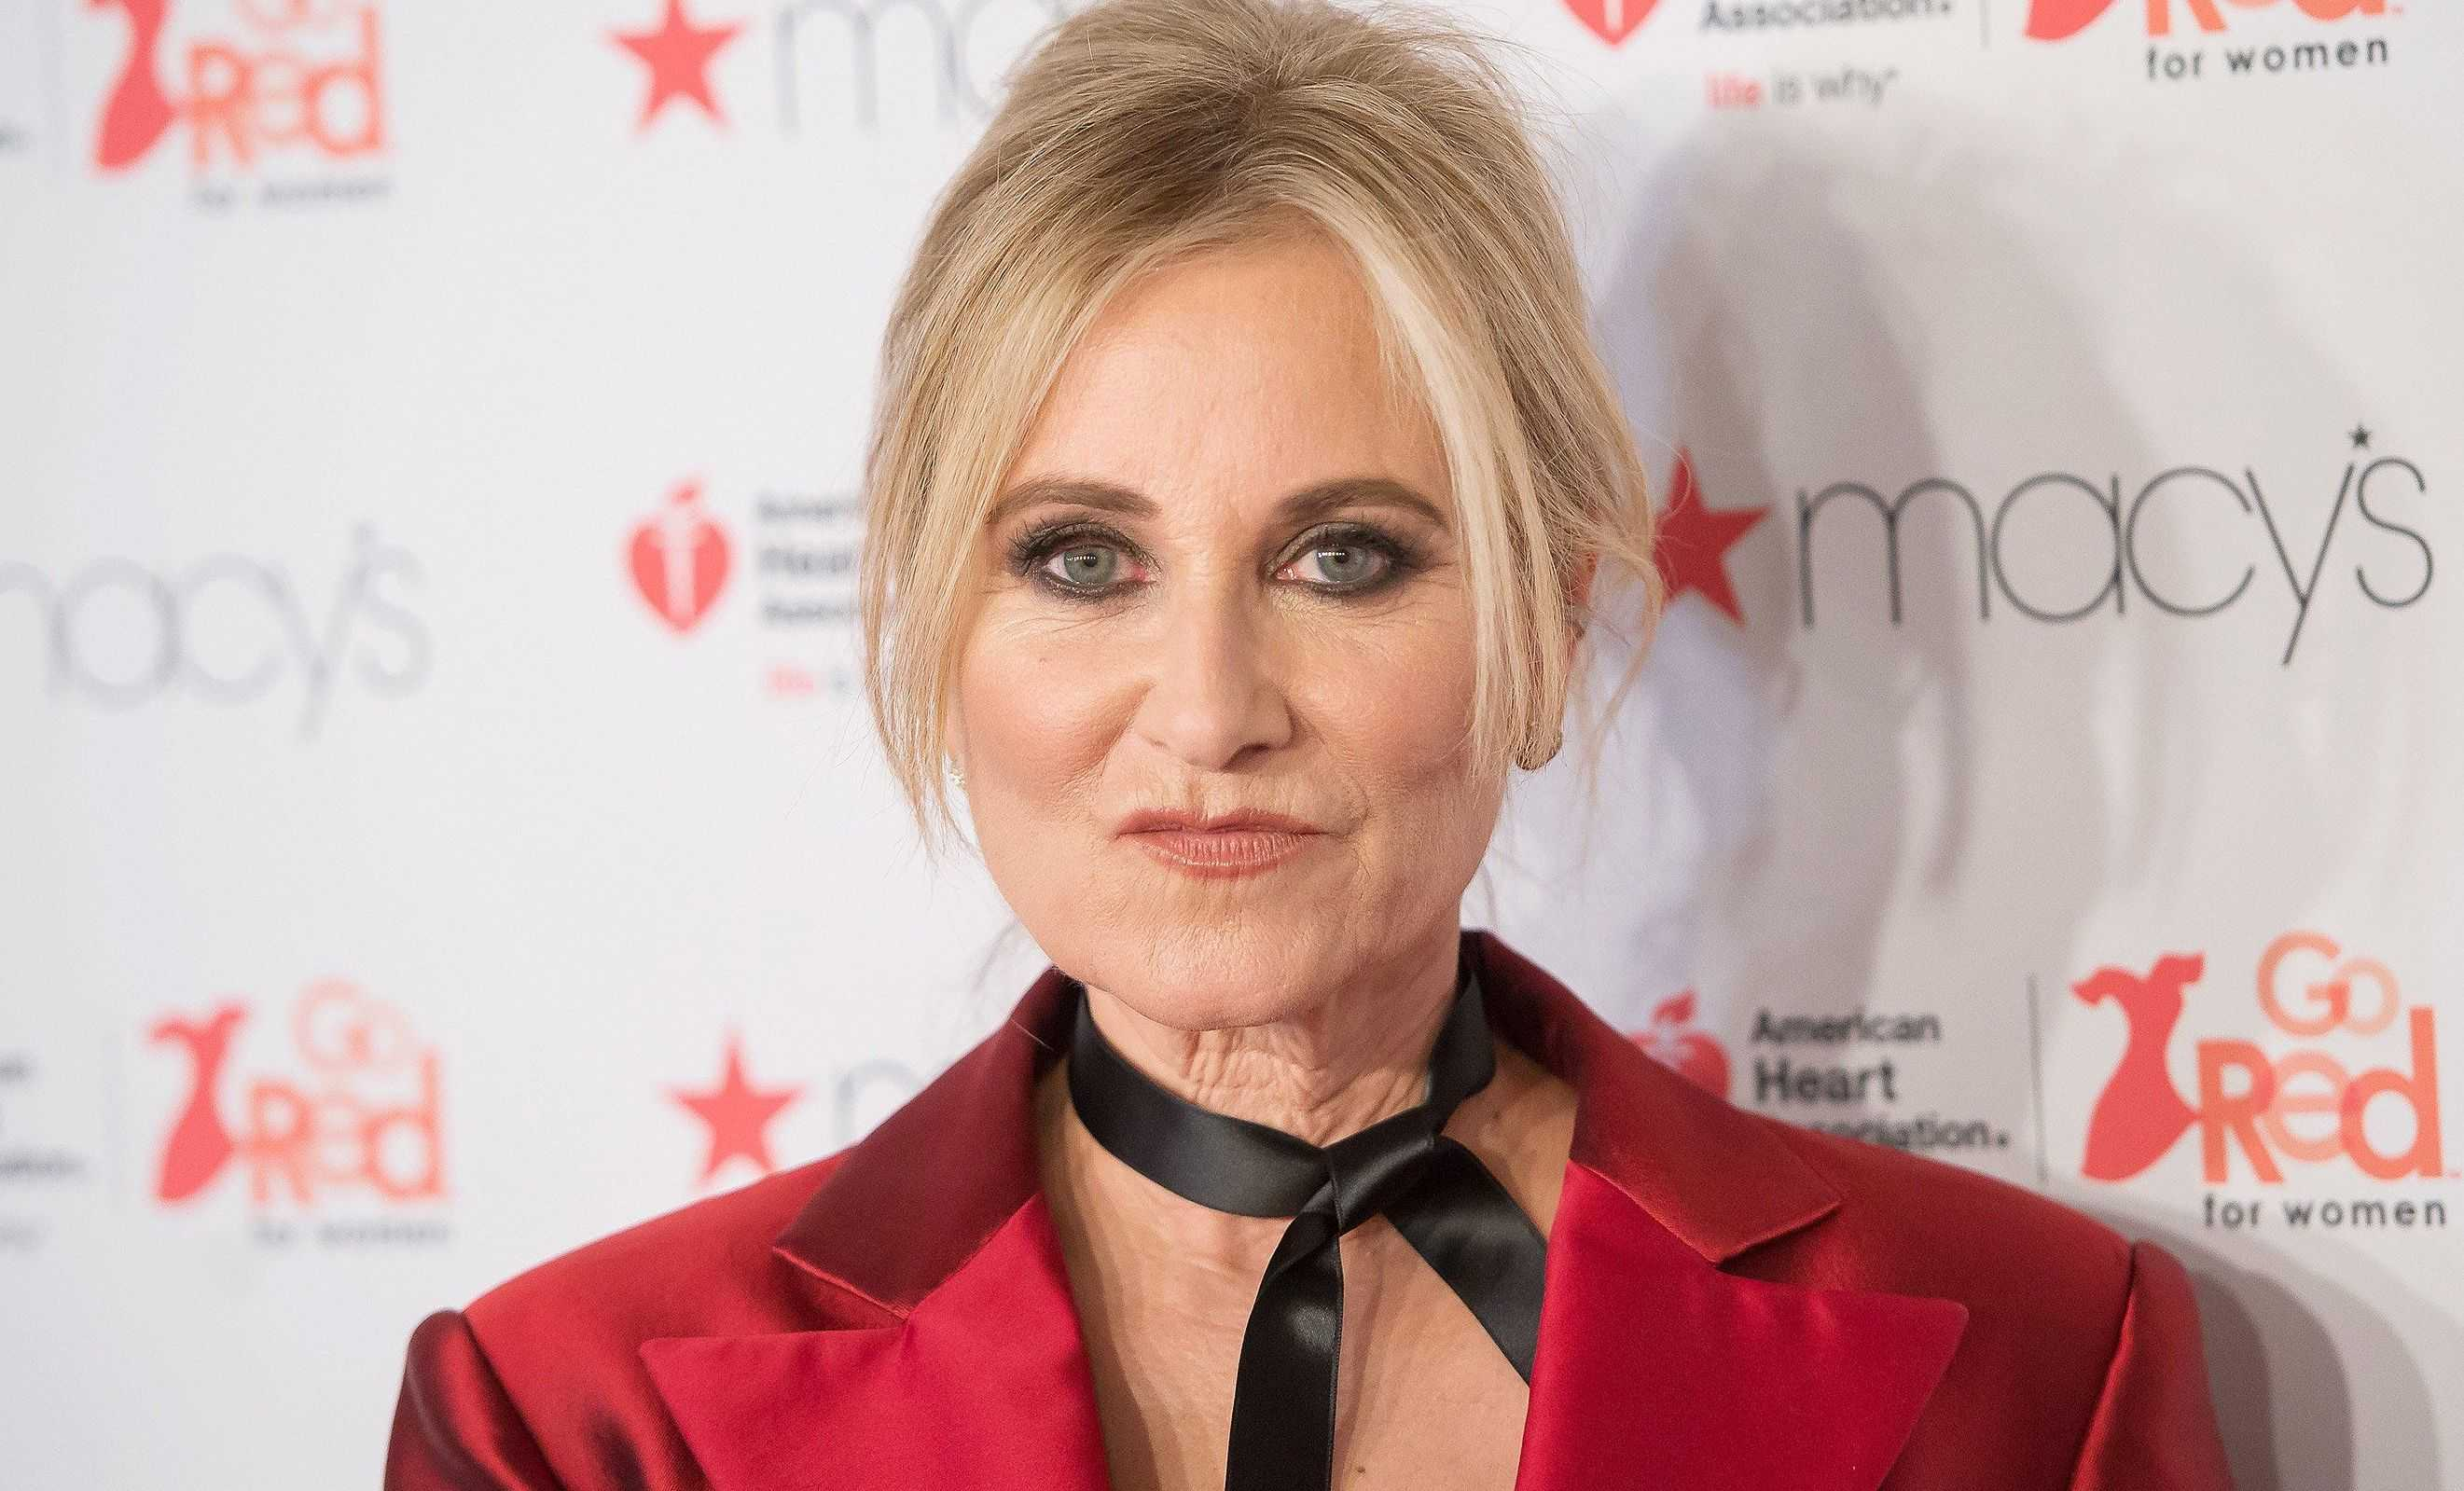 Maureen McCormick Career